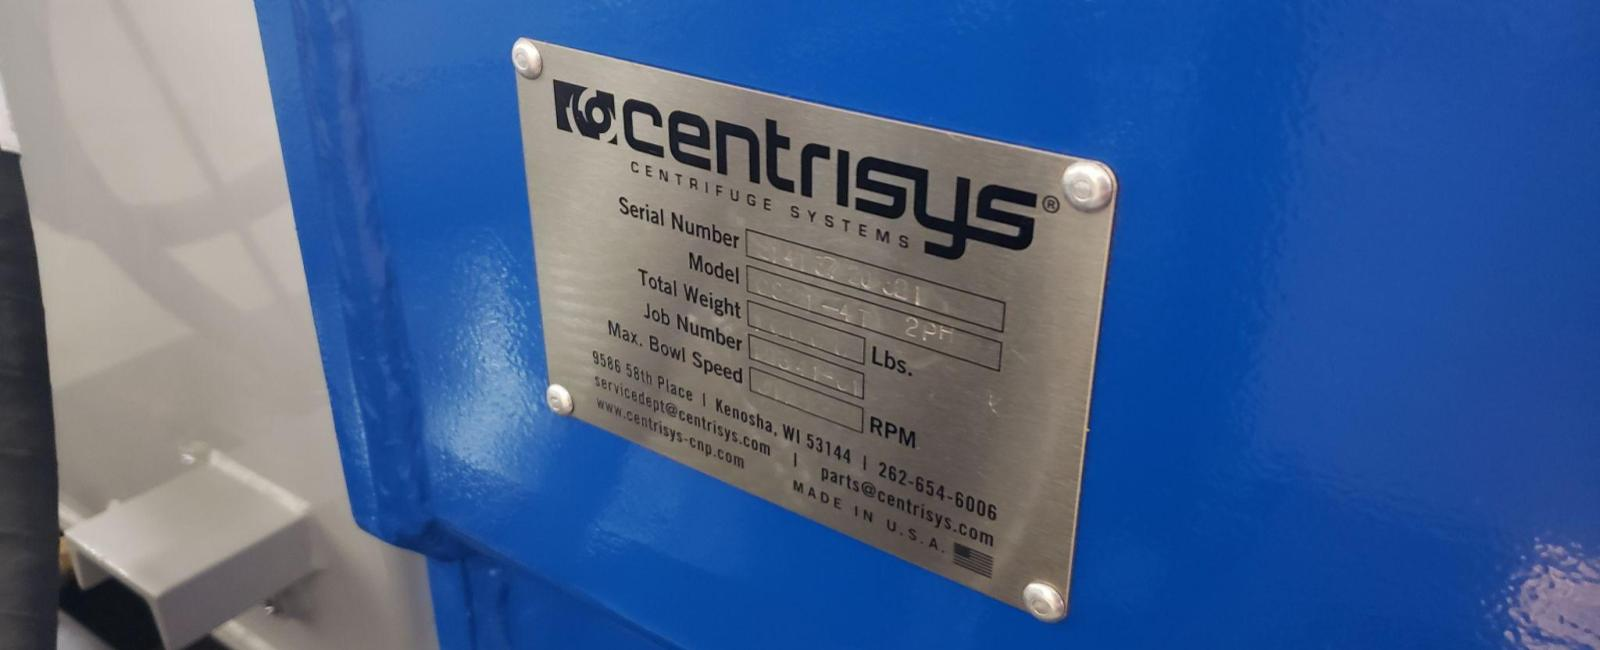 OEM and Centrifuge Parts Six Month Warranty